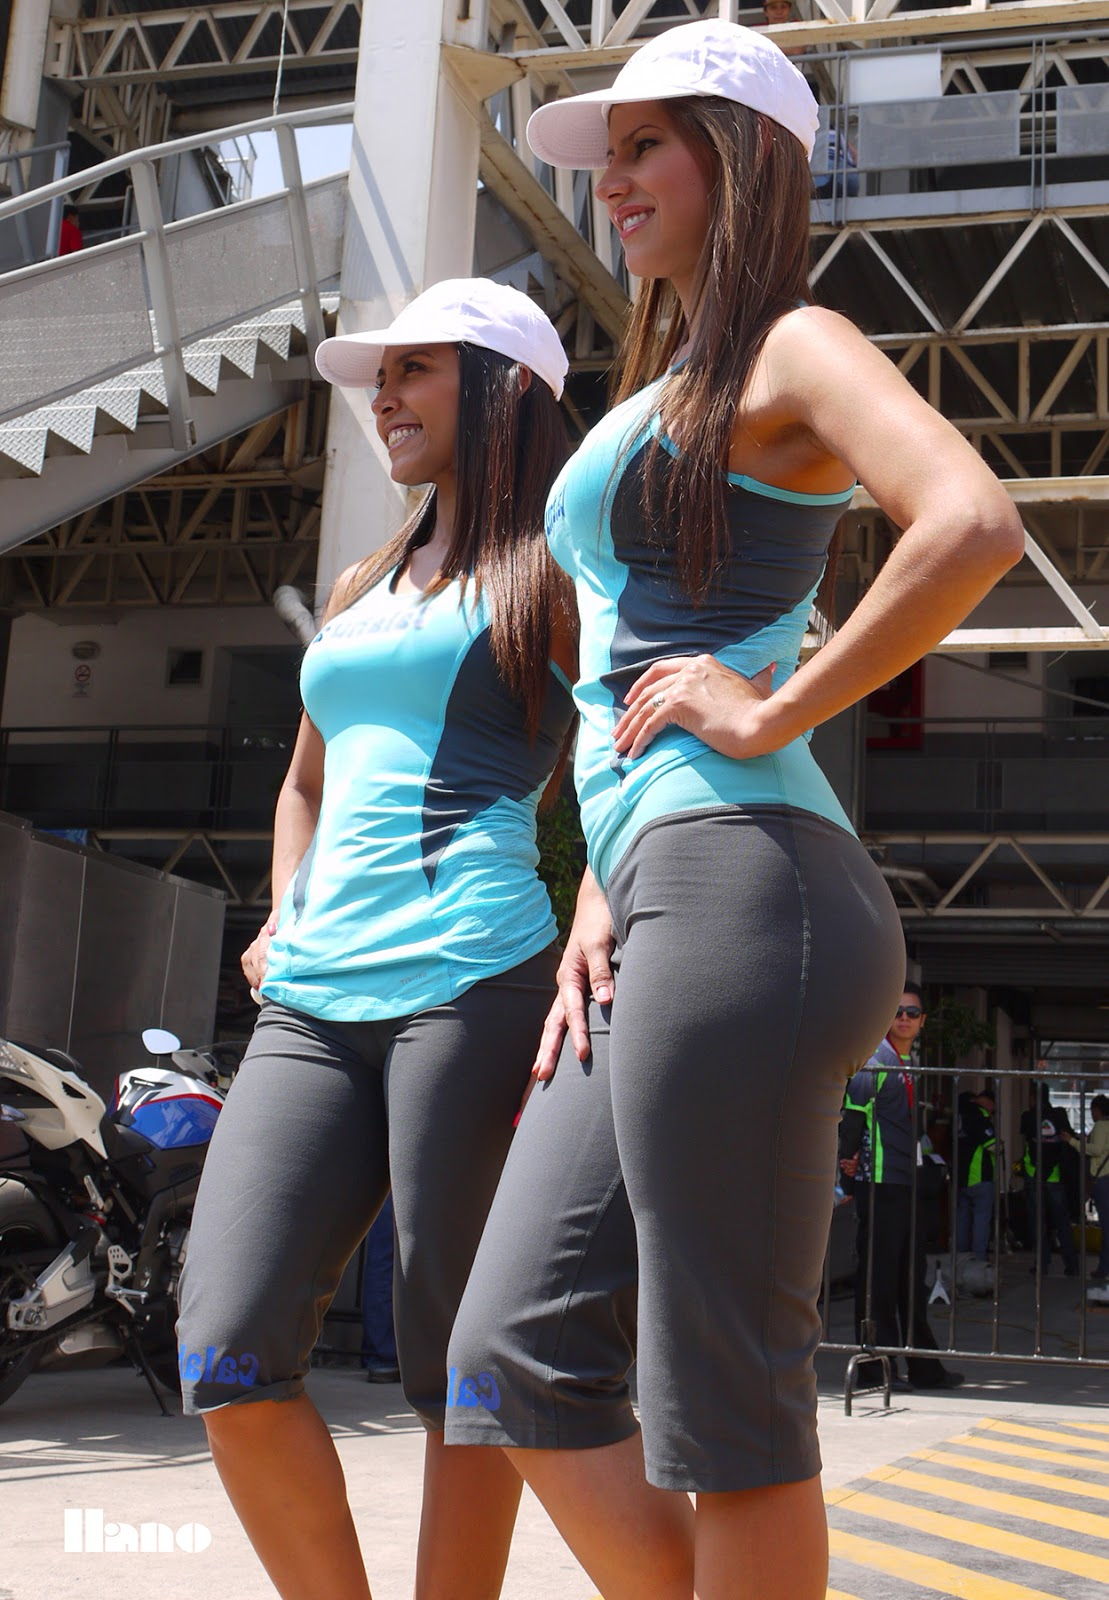 Super Promo Girls In Spandex Perfect Ass-5747